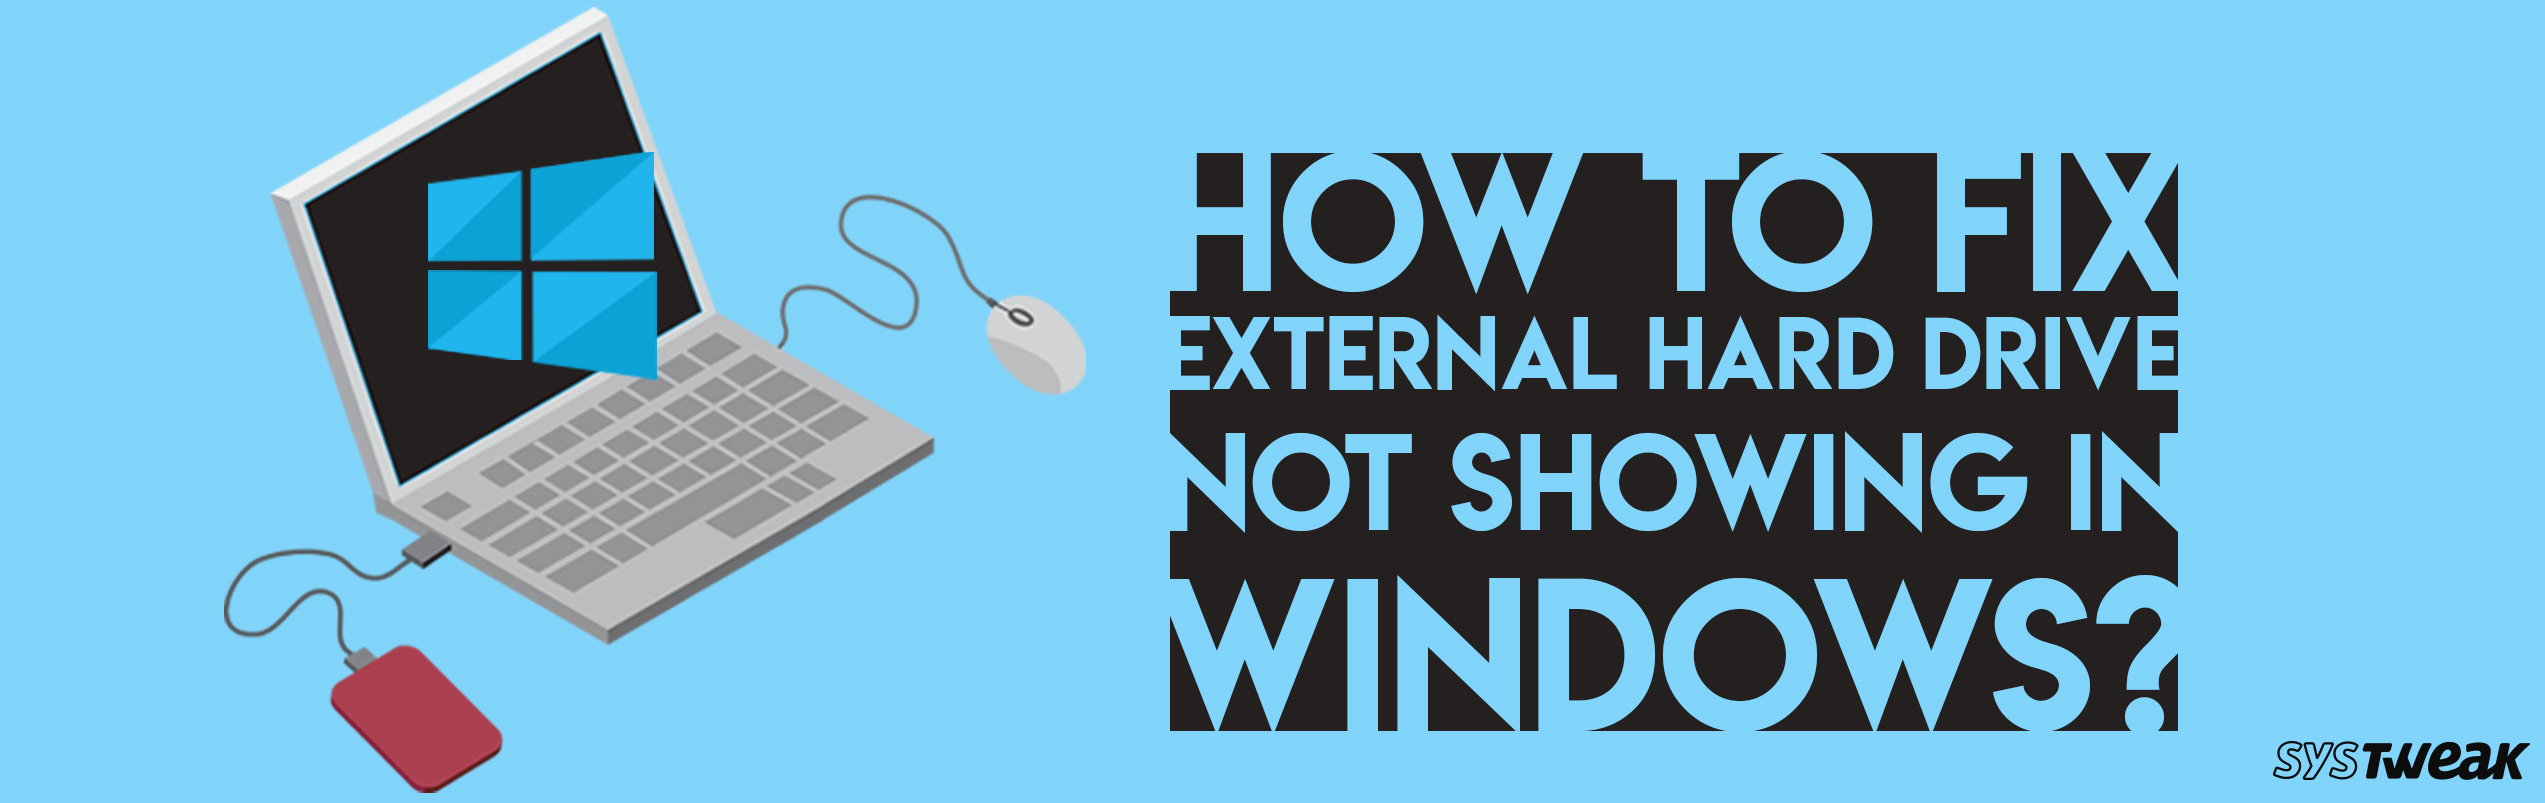 How To Fix External Hard Drive Not Showing In Windows